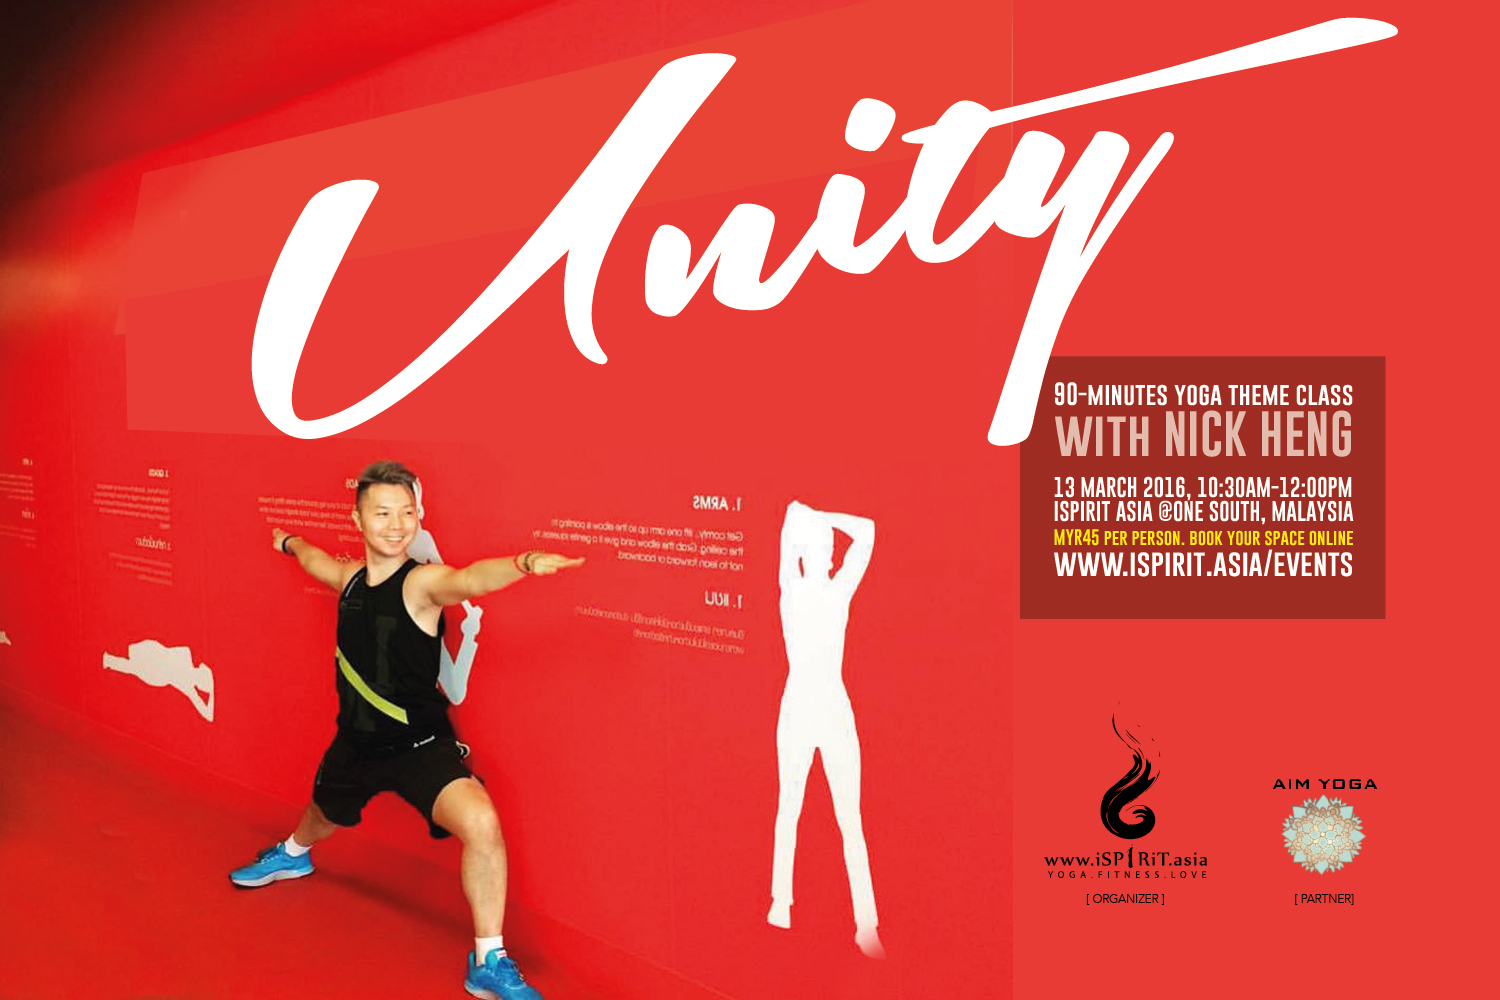 Poster Unity~ 90-minute Yoga Theme Class With Nick Heng